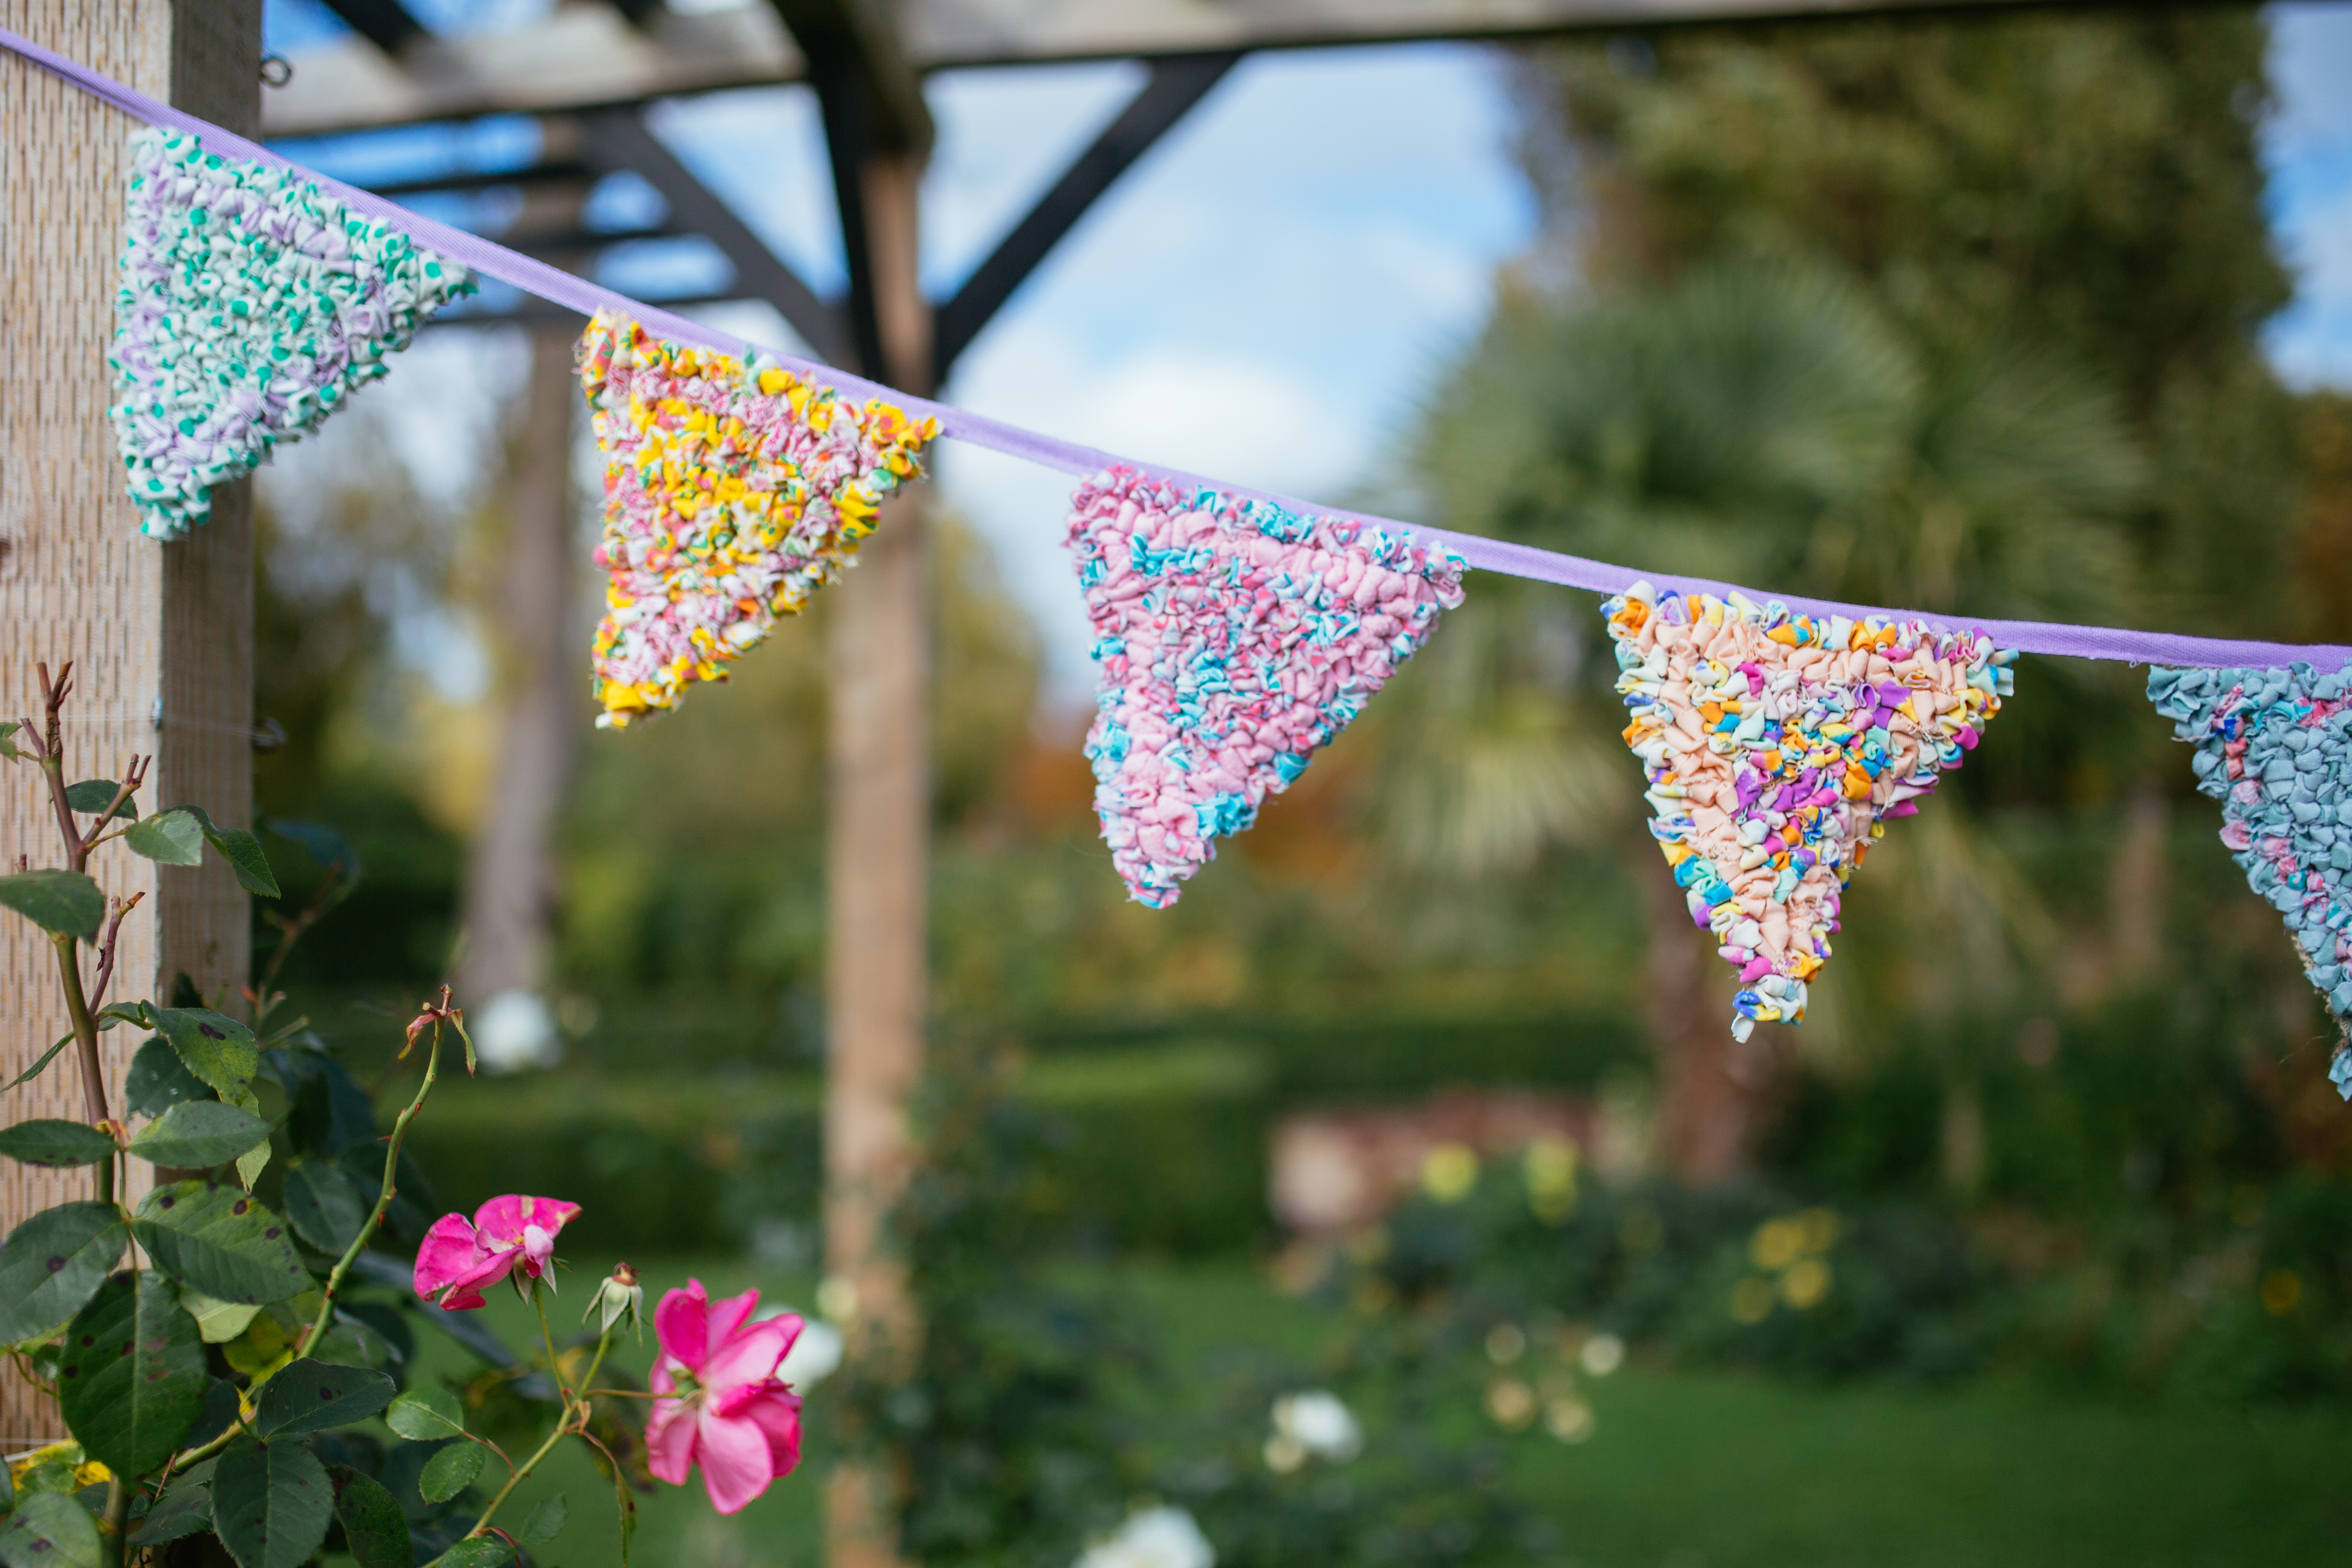 Rag Rug Bunting found in Rag Rugs, Pillows & More Book by Elspeth Jackson